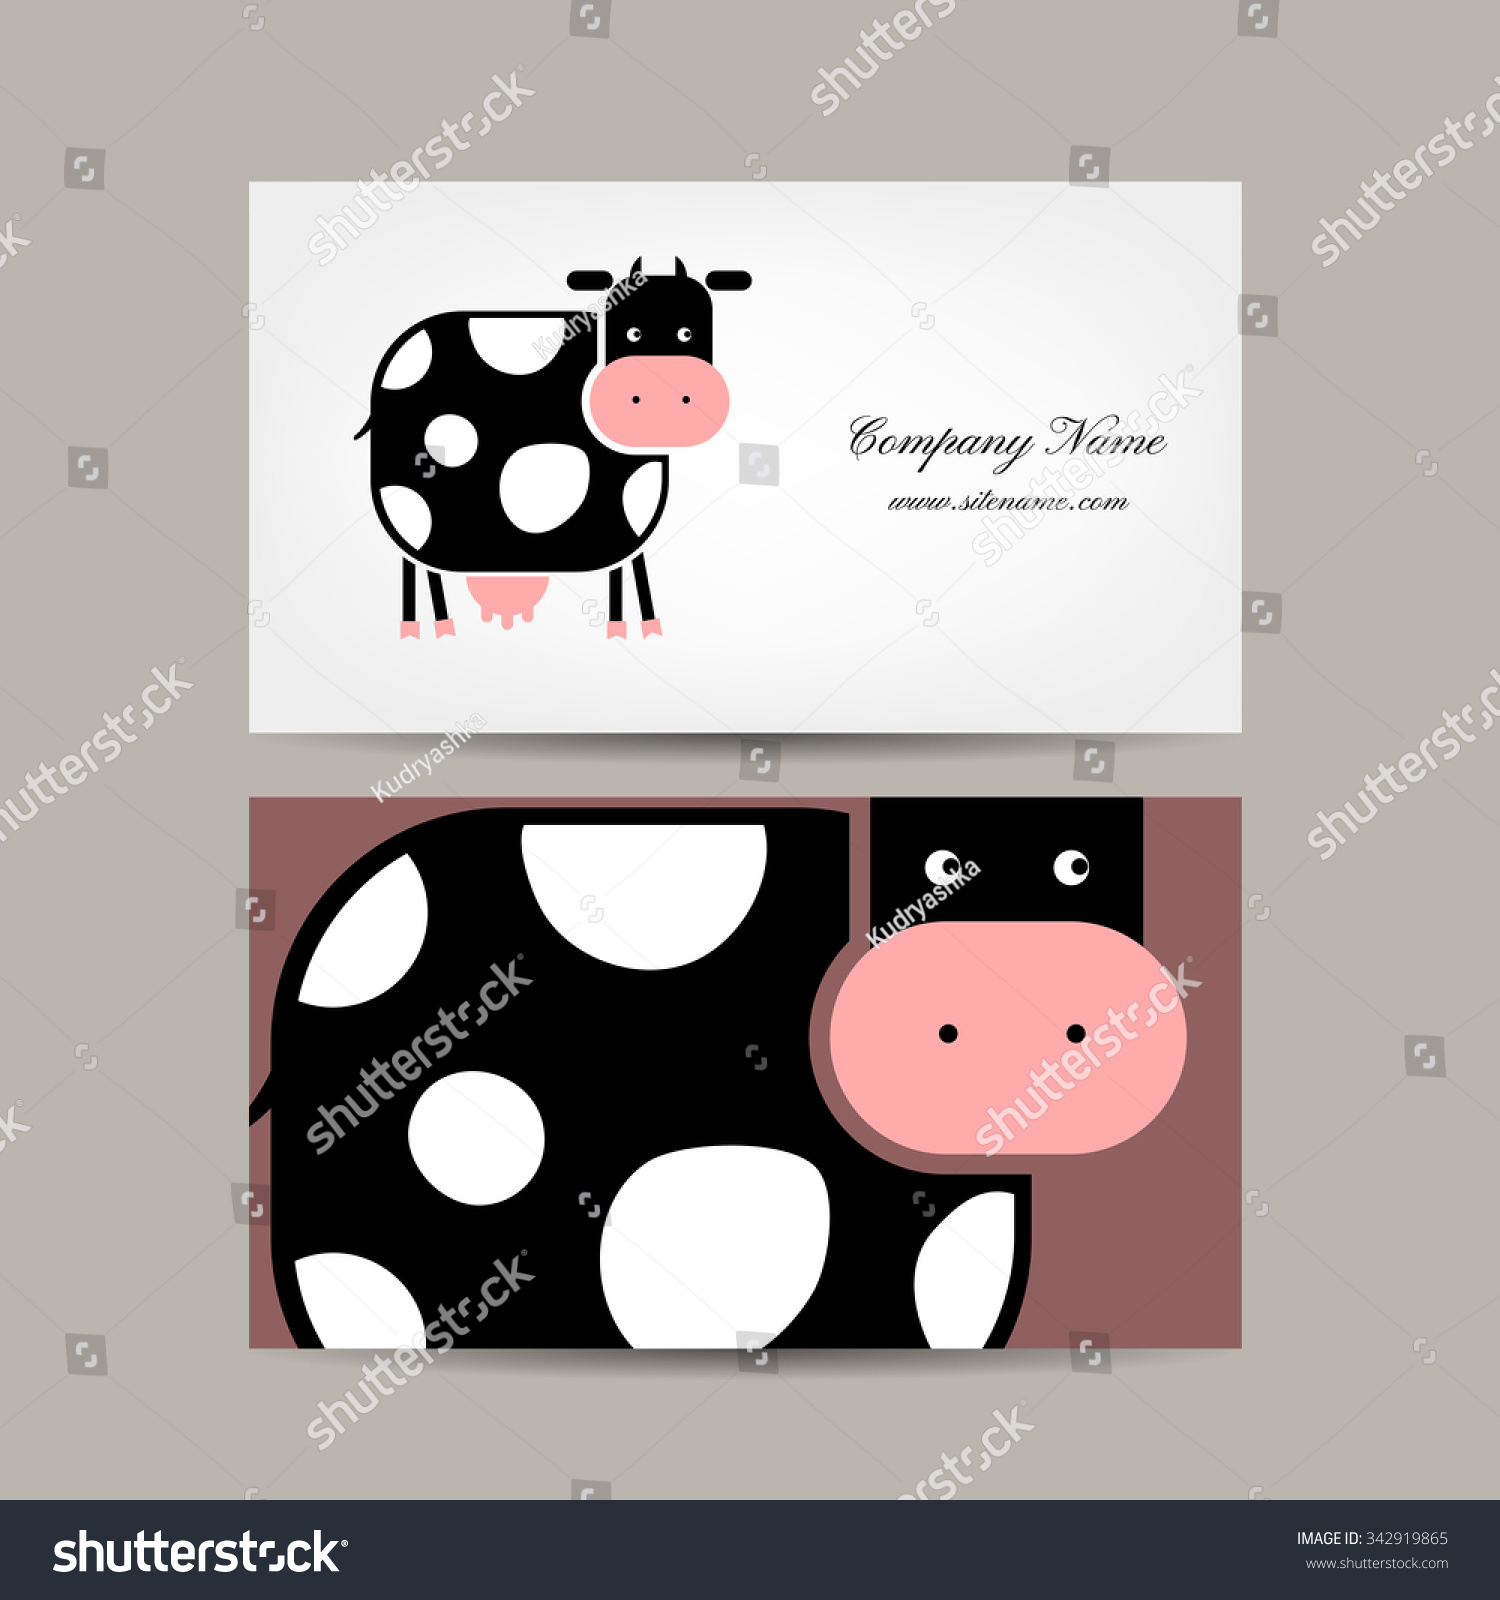 Business Cards Design Funny Cow Vector Stock Vector 342919865 ...